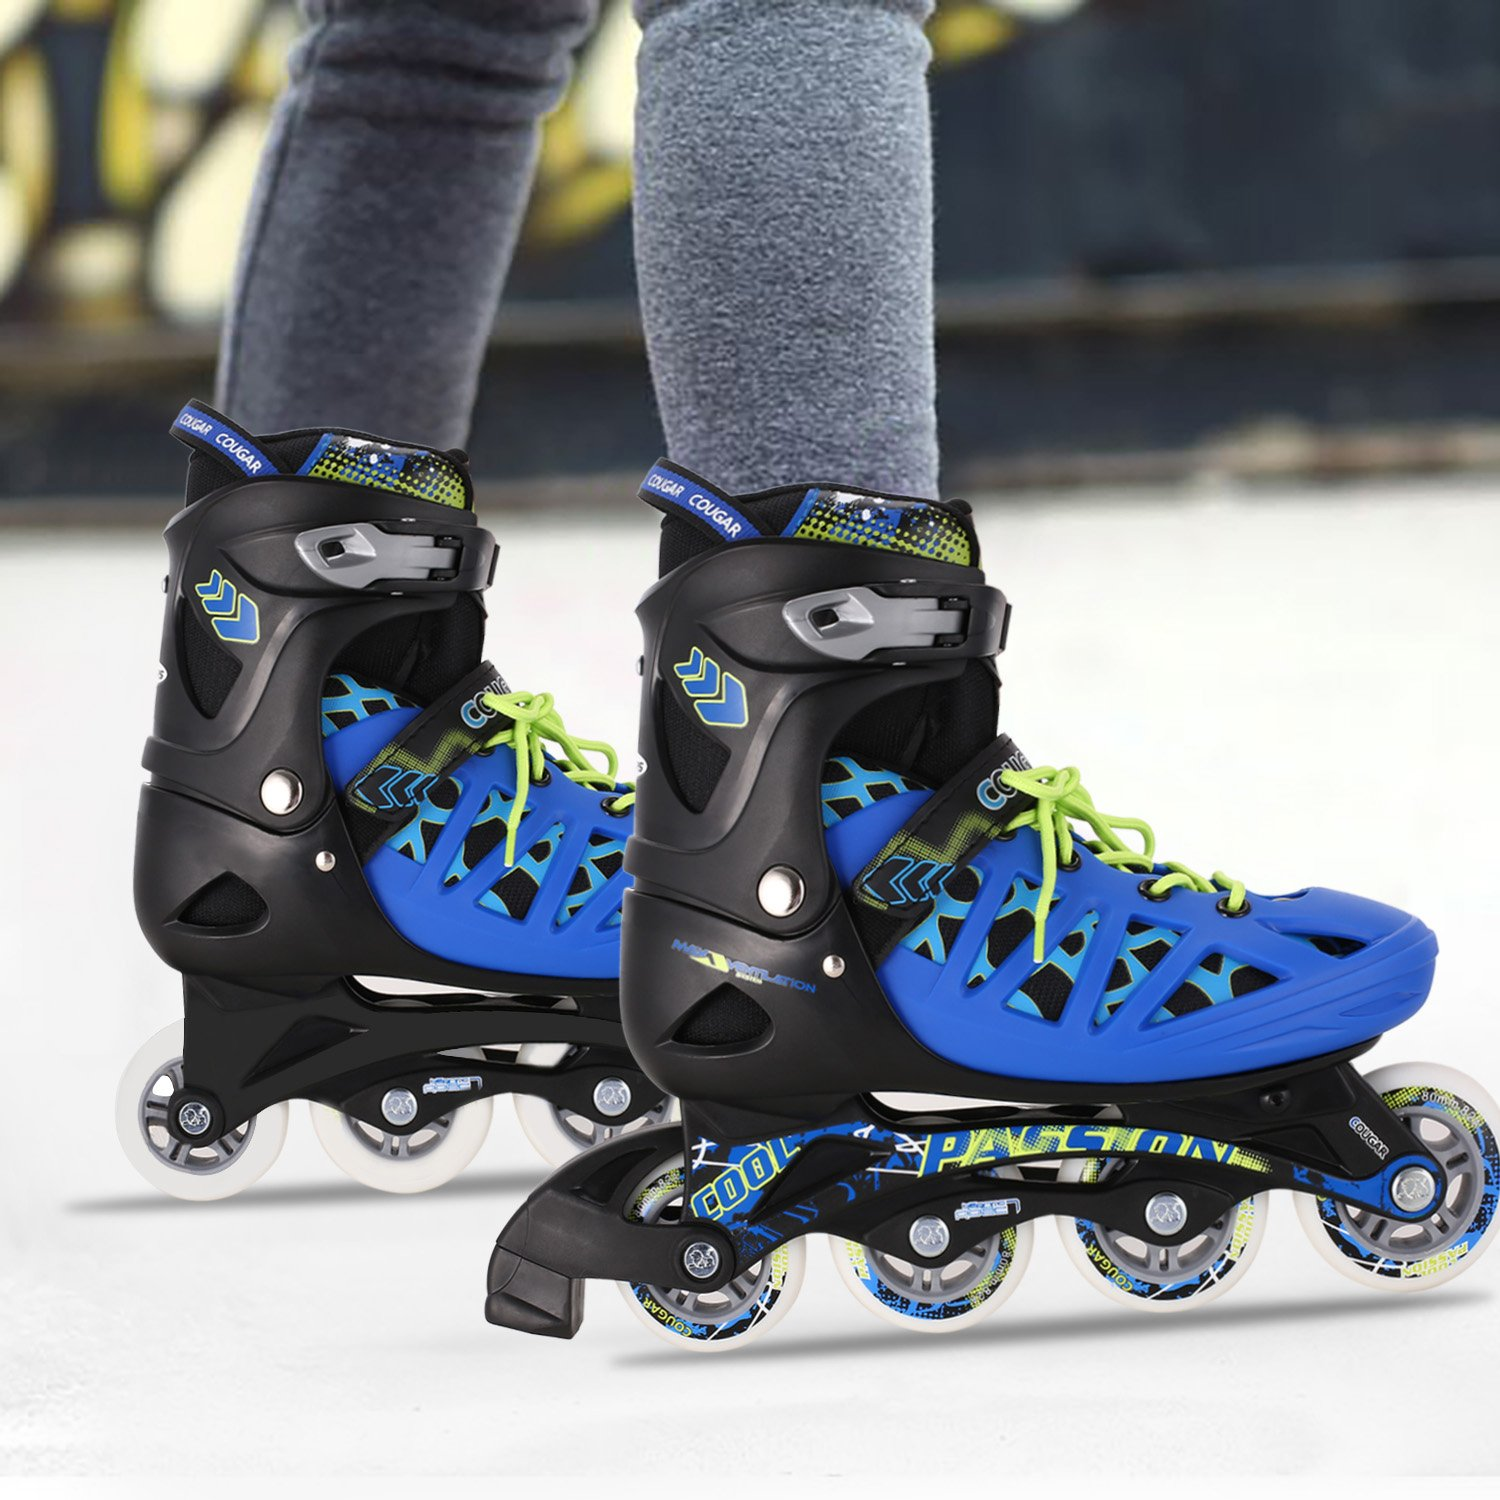 Anfan Adjustable Inline Skates, Safe and Durable Training Rollerblades for Teens/Adults, Integral Steel Plastic Roller Skate (US STOCK) (Blue, US 8-10) by Anfan